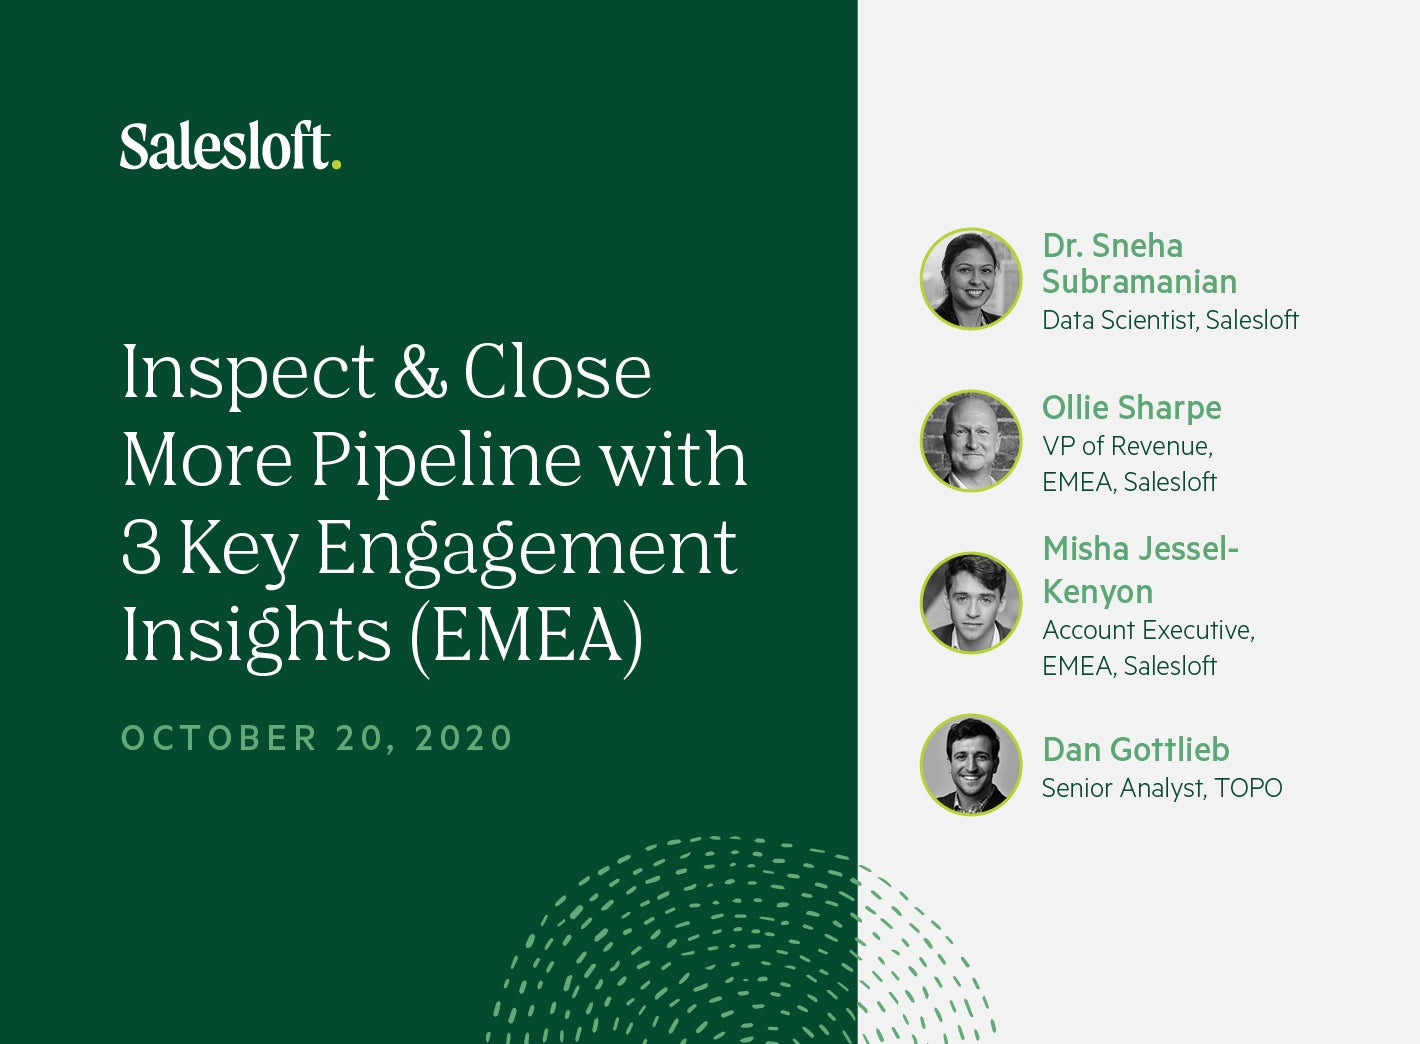 Inspect & Close More Pipeline with 3 Key Engagement Insights (EMEA)